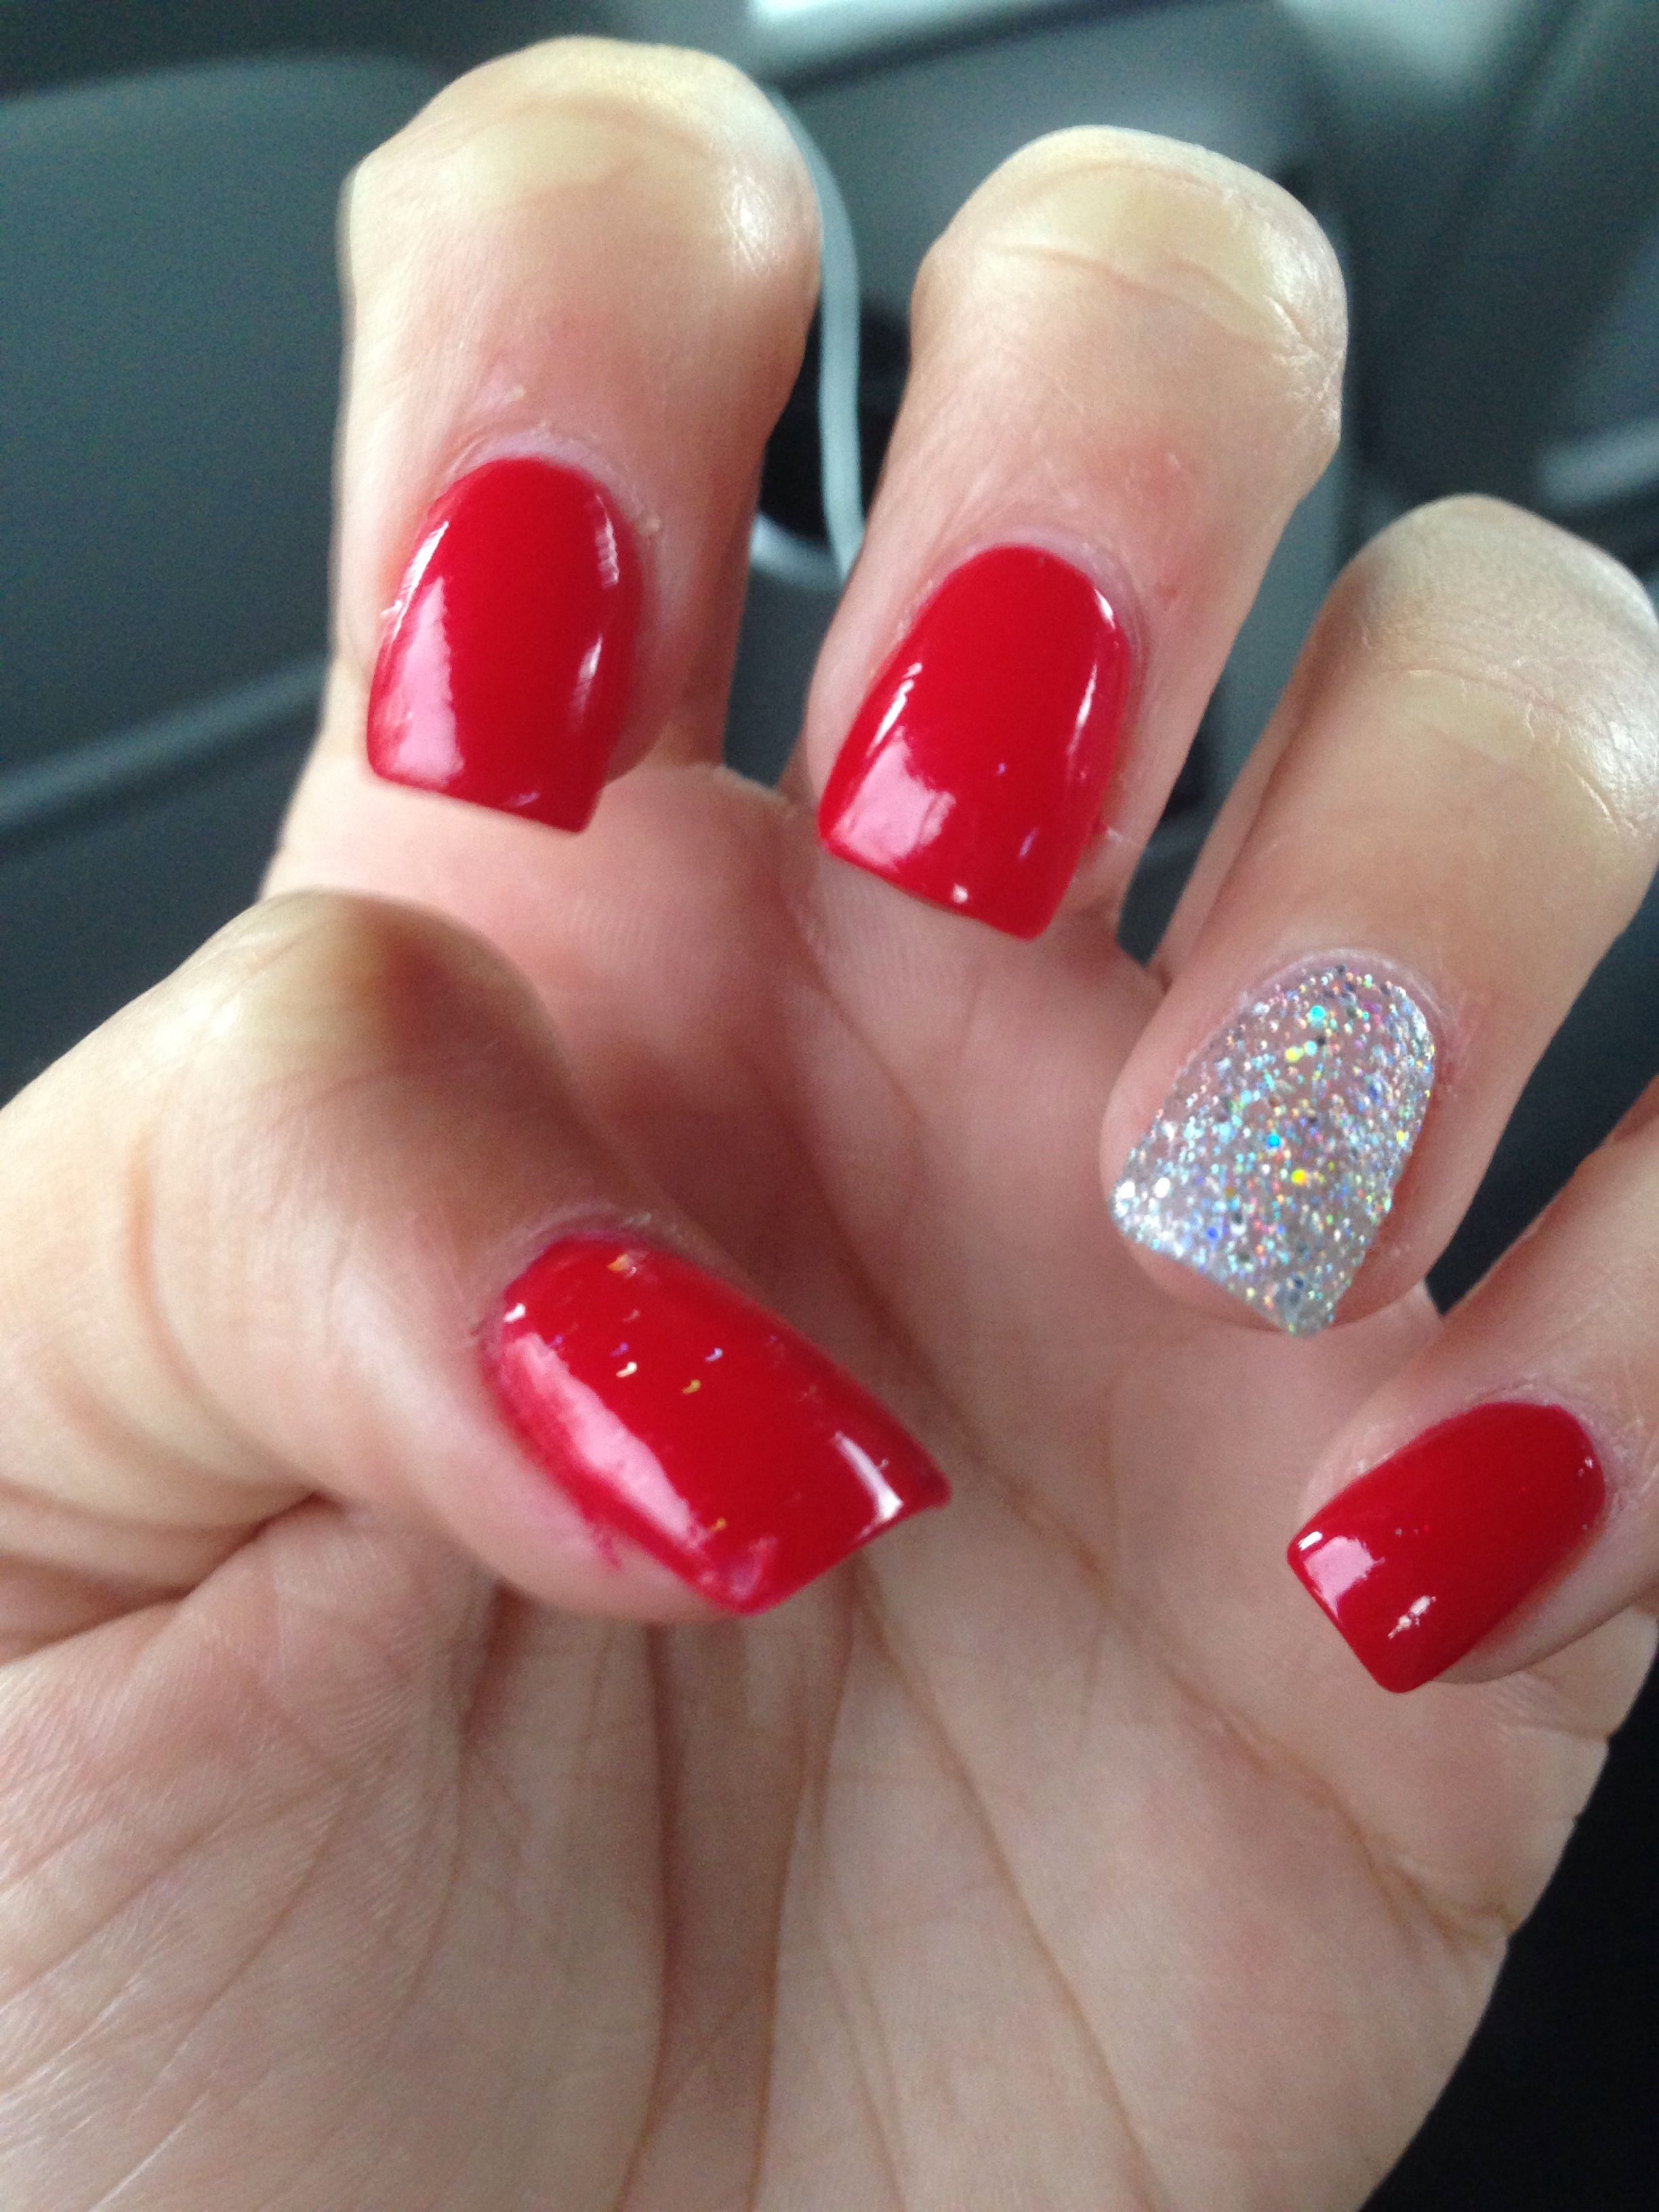 acrylics! red with glitter nail on ring finger | things to wear